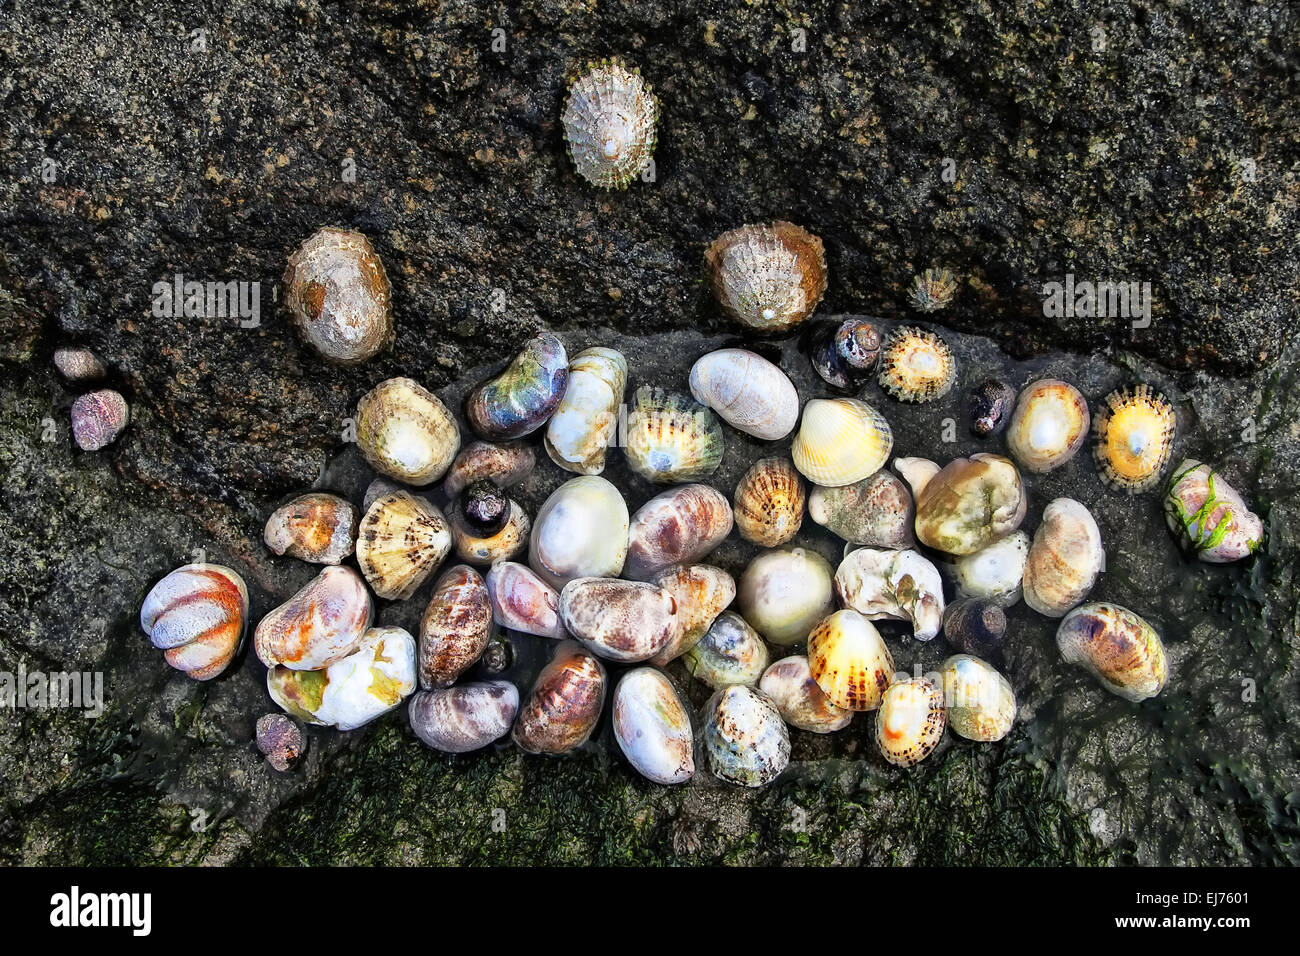 rock shell, Brittany, France - Stock Image